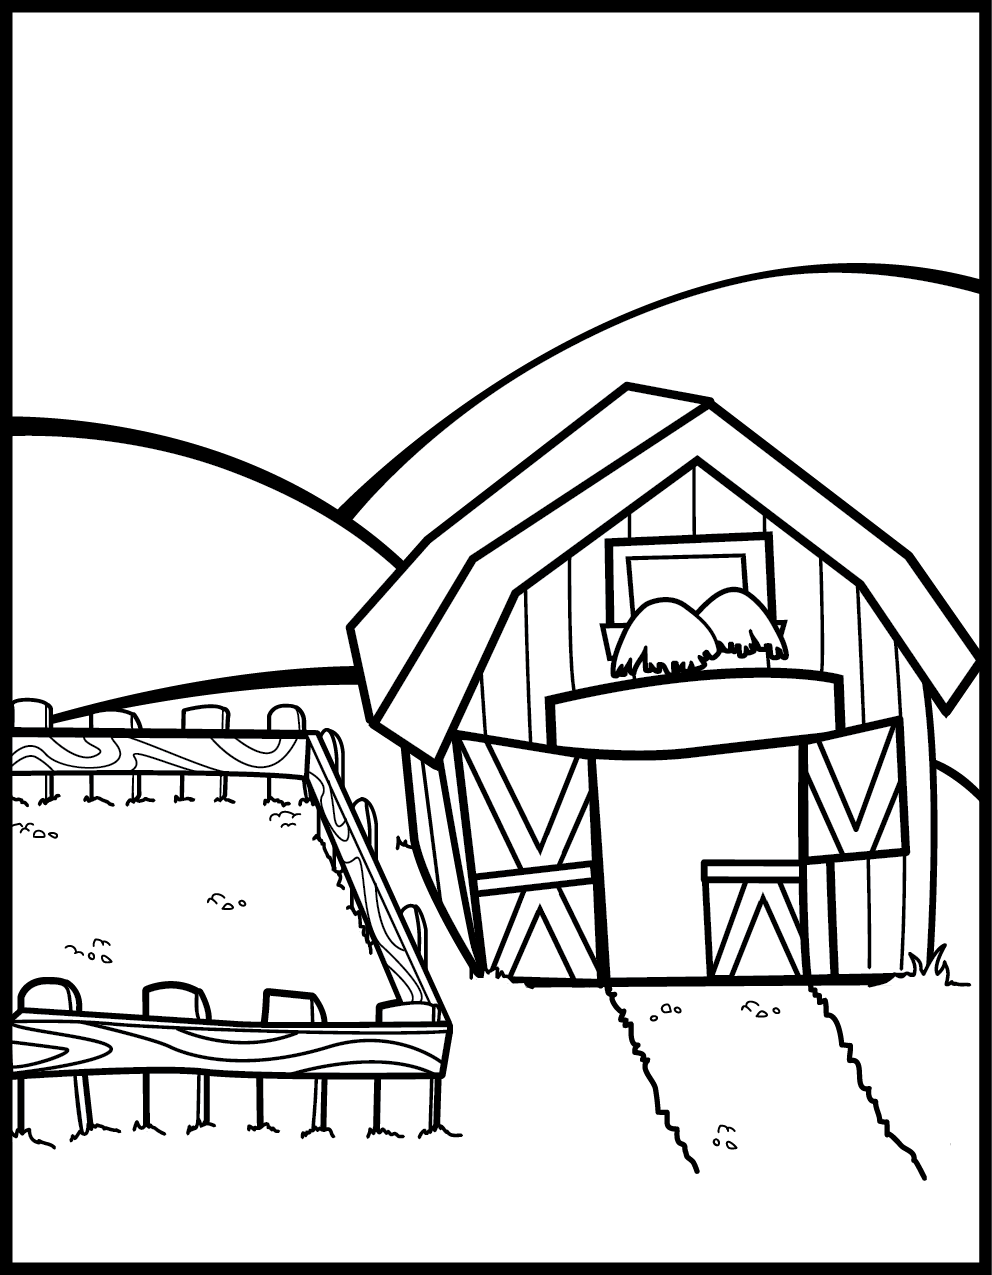 farmers coloring farm coloring pages coloring pages to download and print farmers coloring